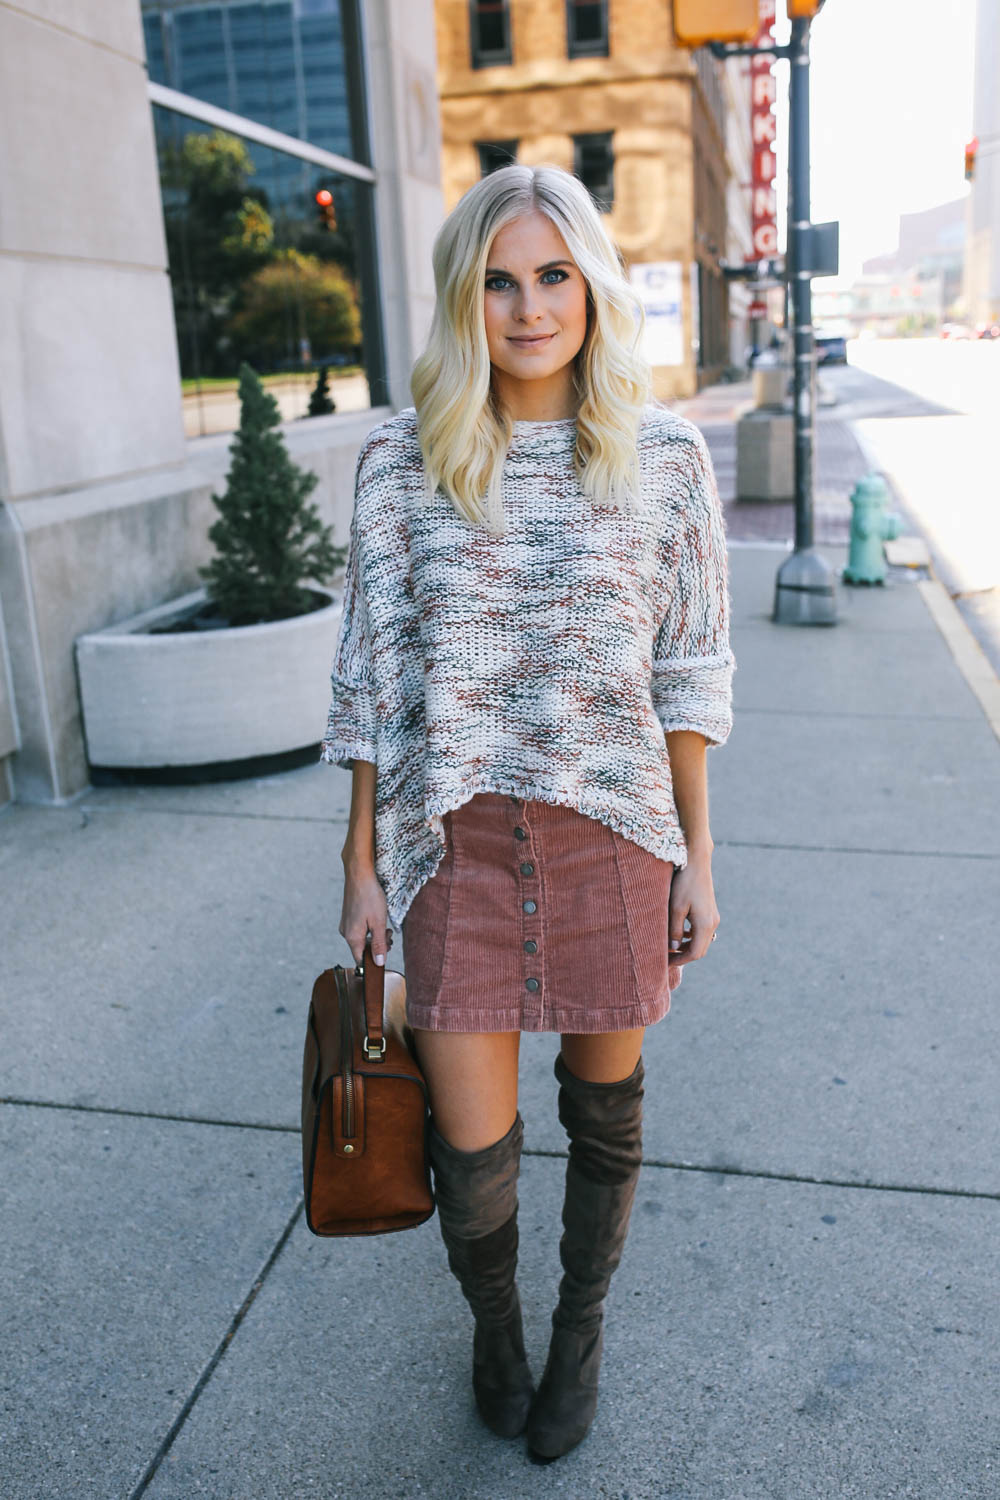 dolman-sweater-and-skirt-3.jpg